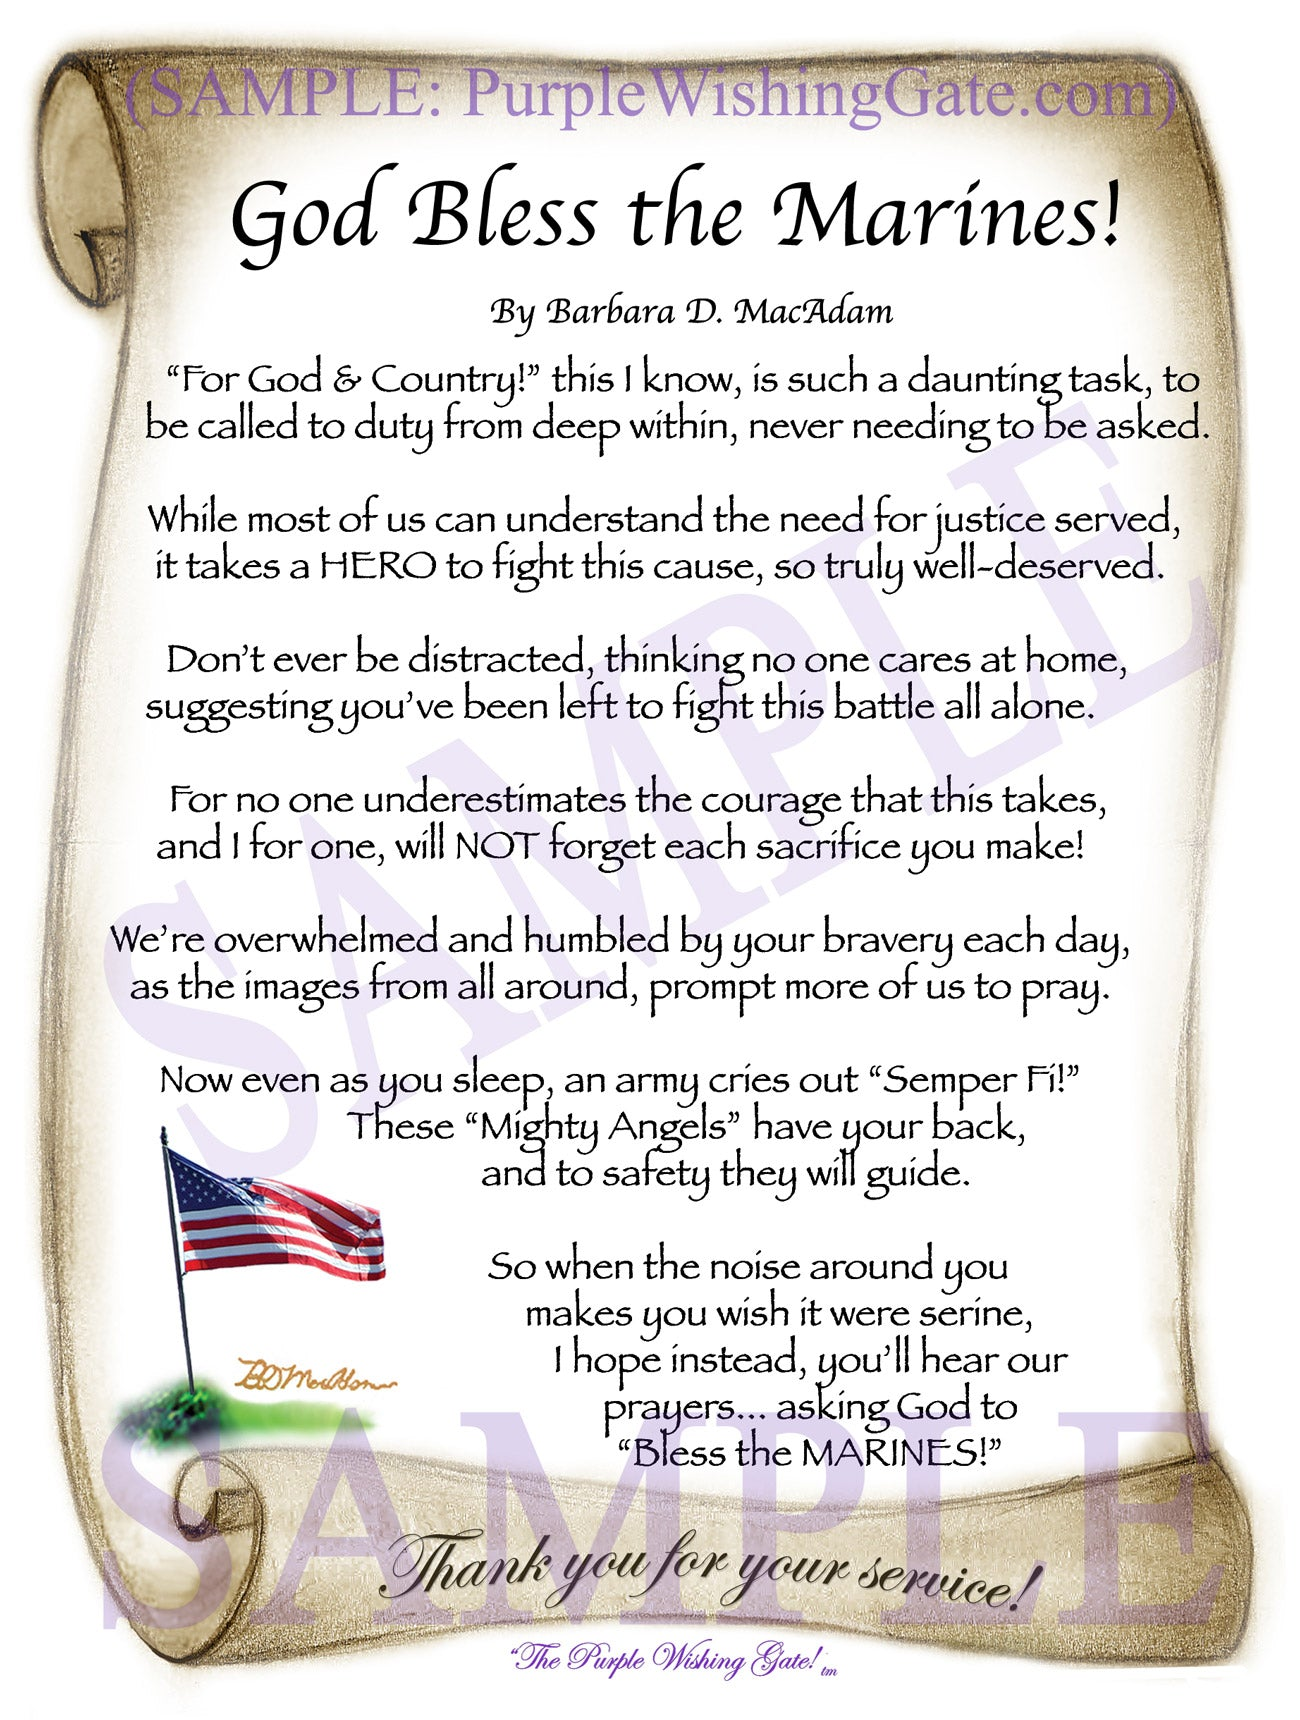 God Bless the Marines! - Military Gift - PurpleWishingGate.com